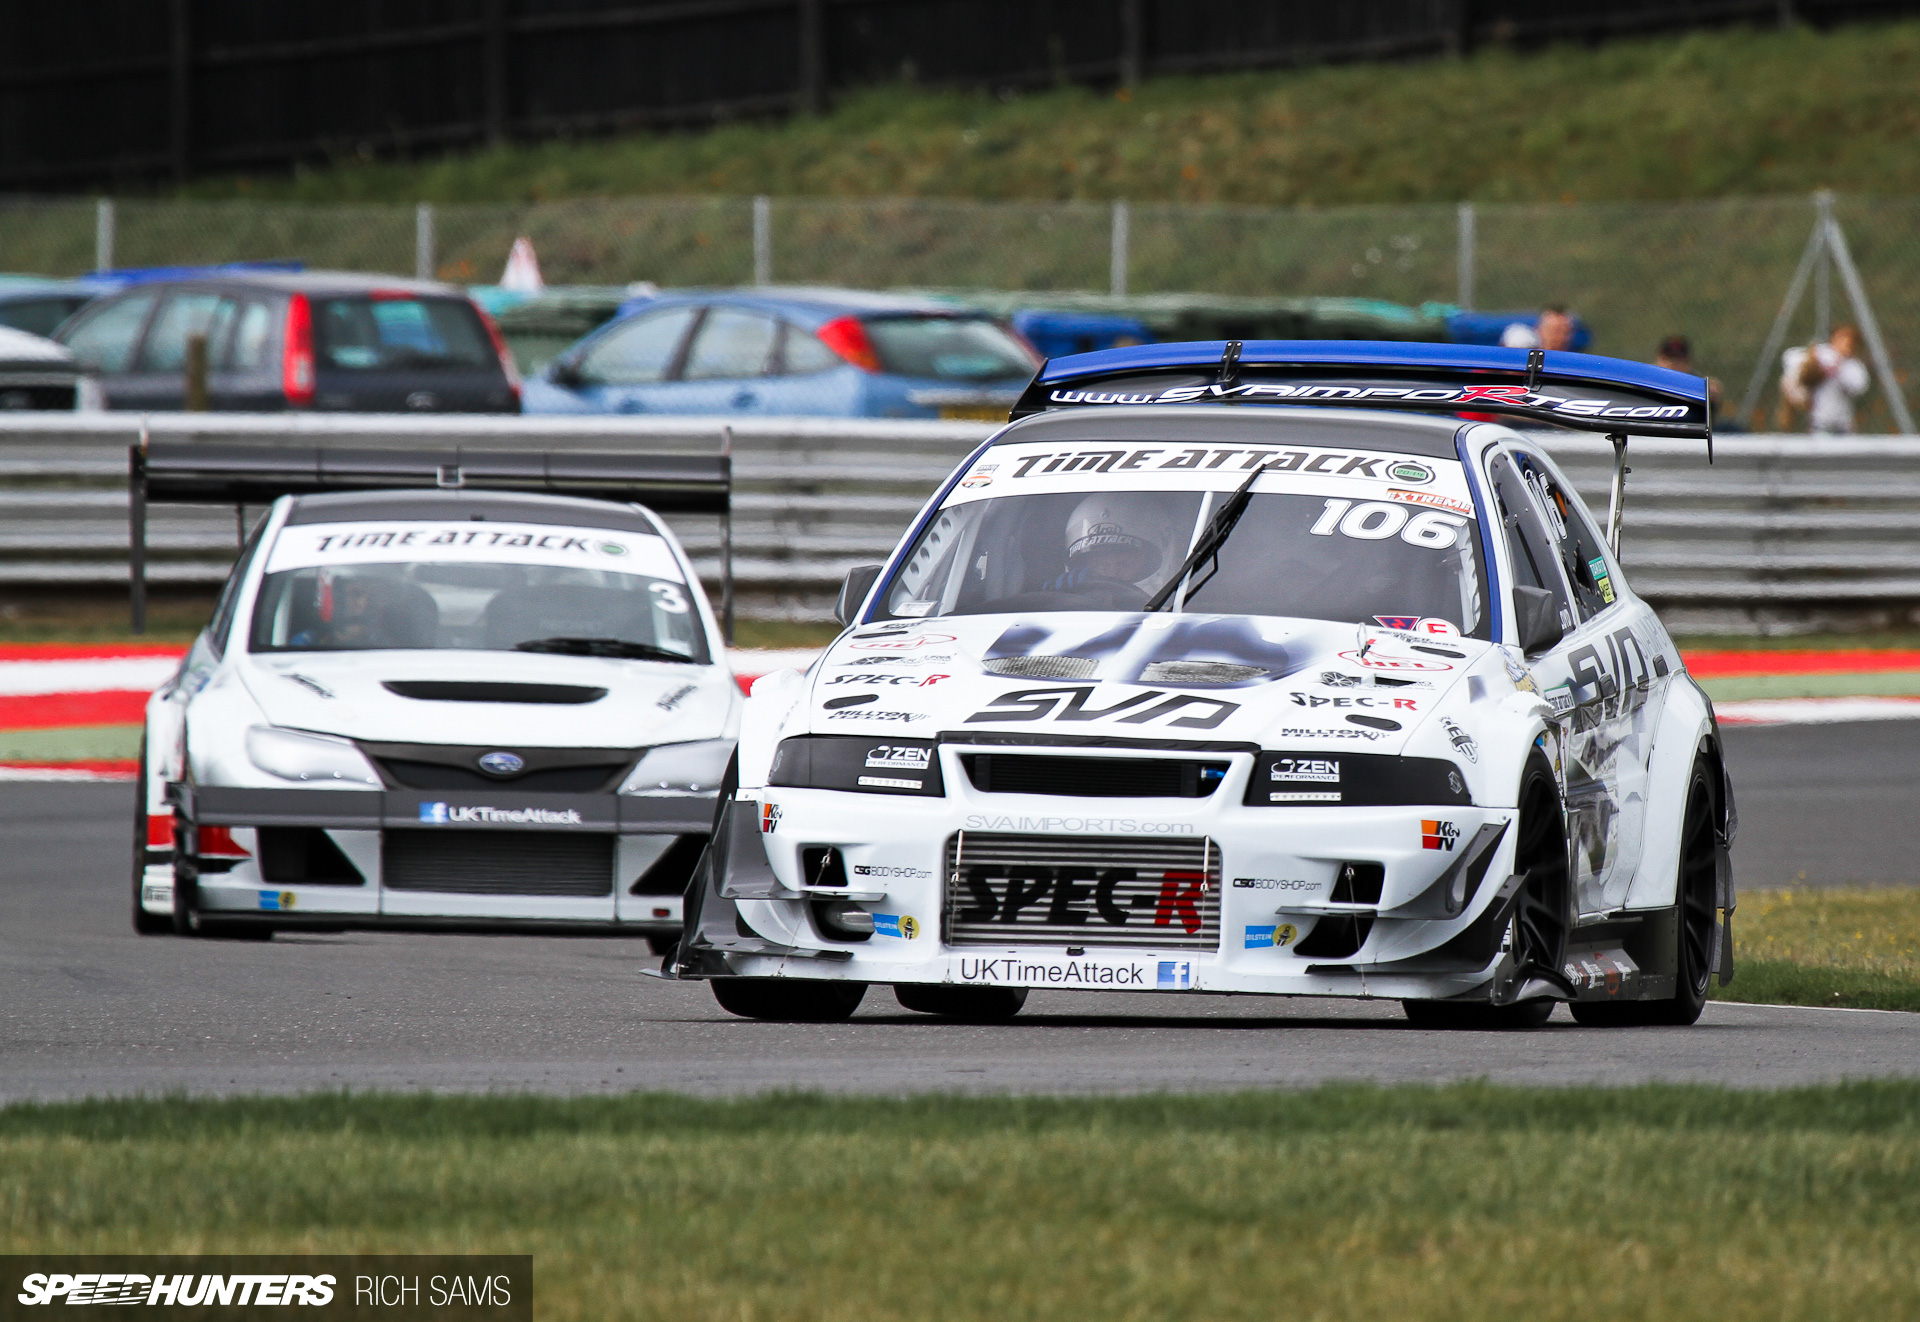 Time attack cars